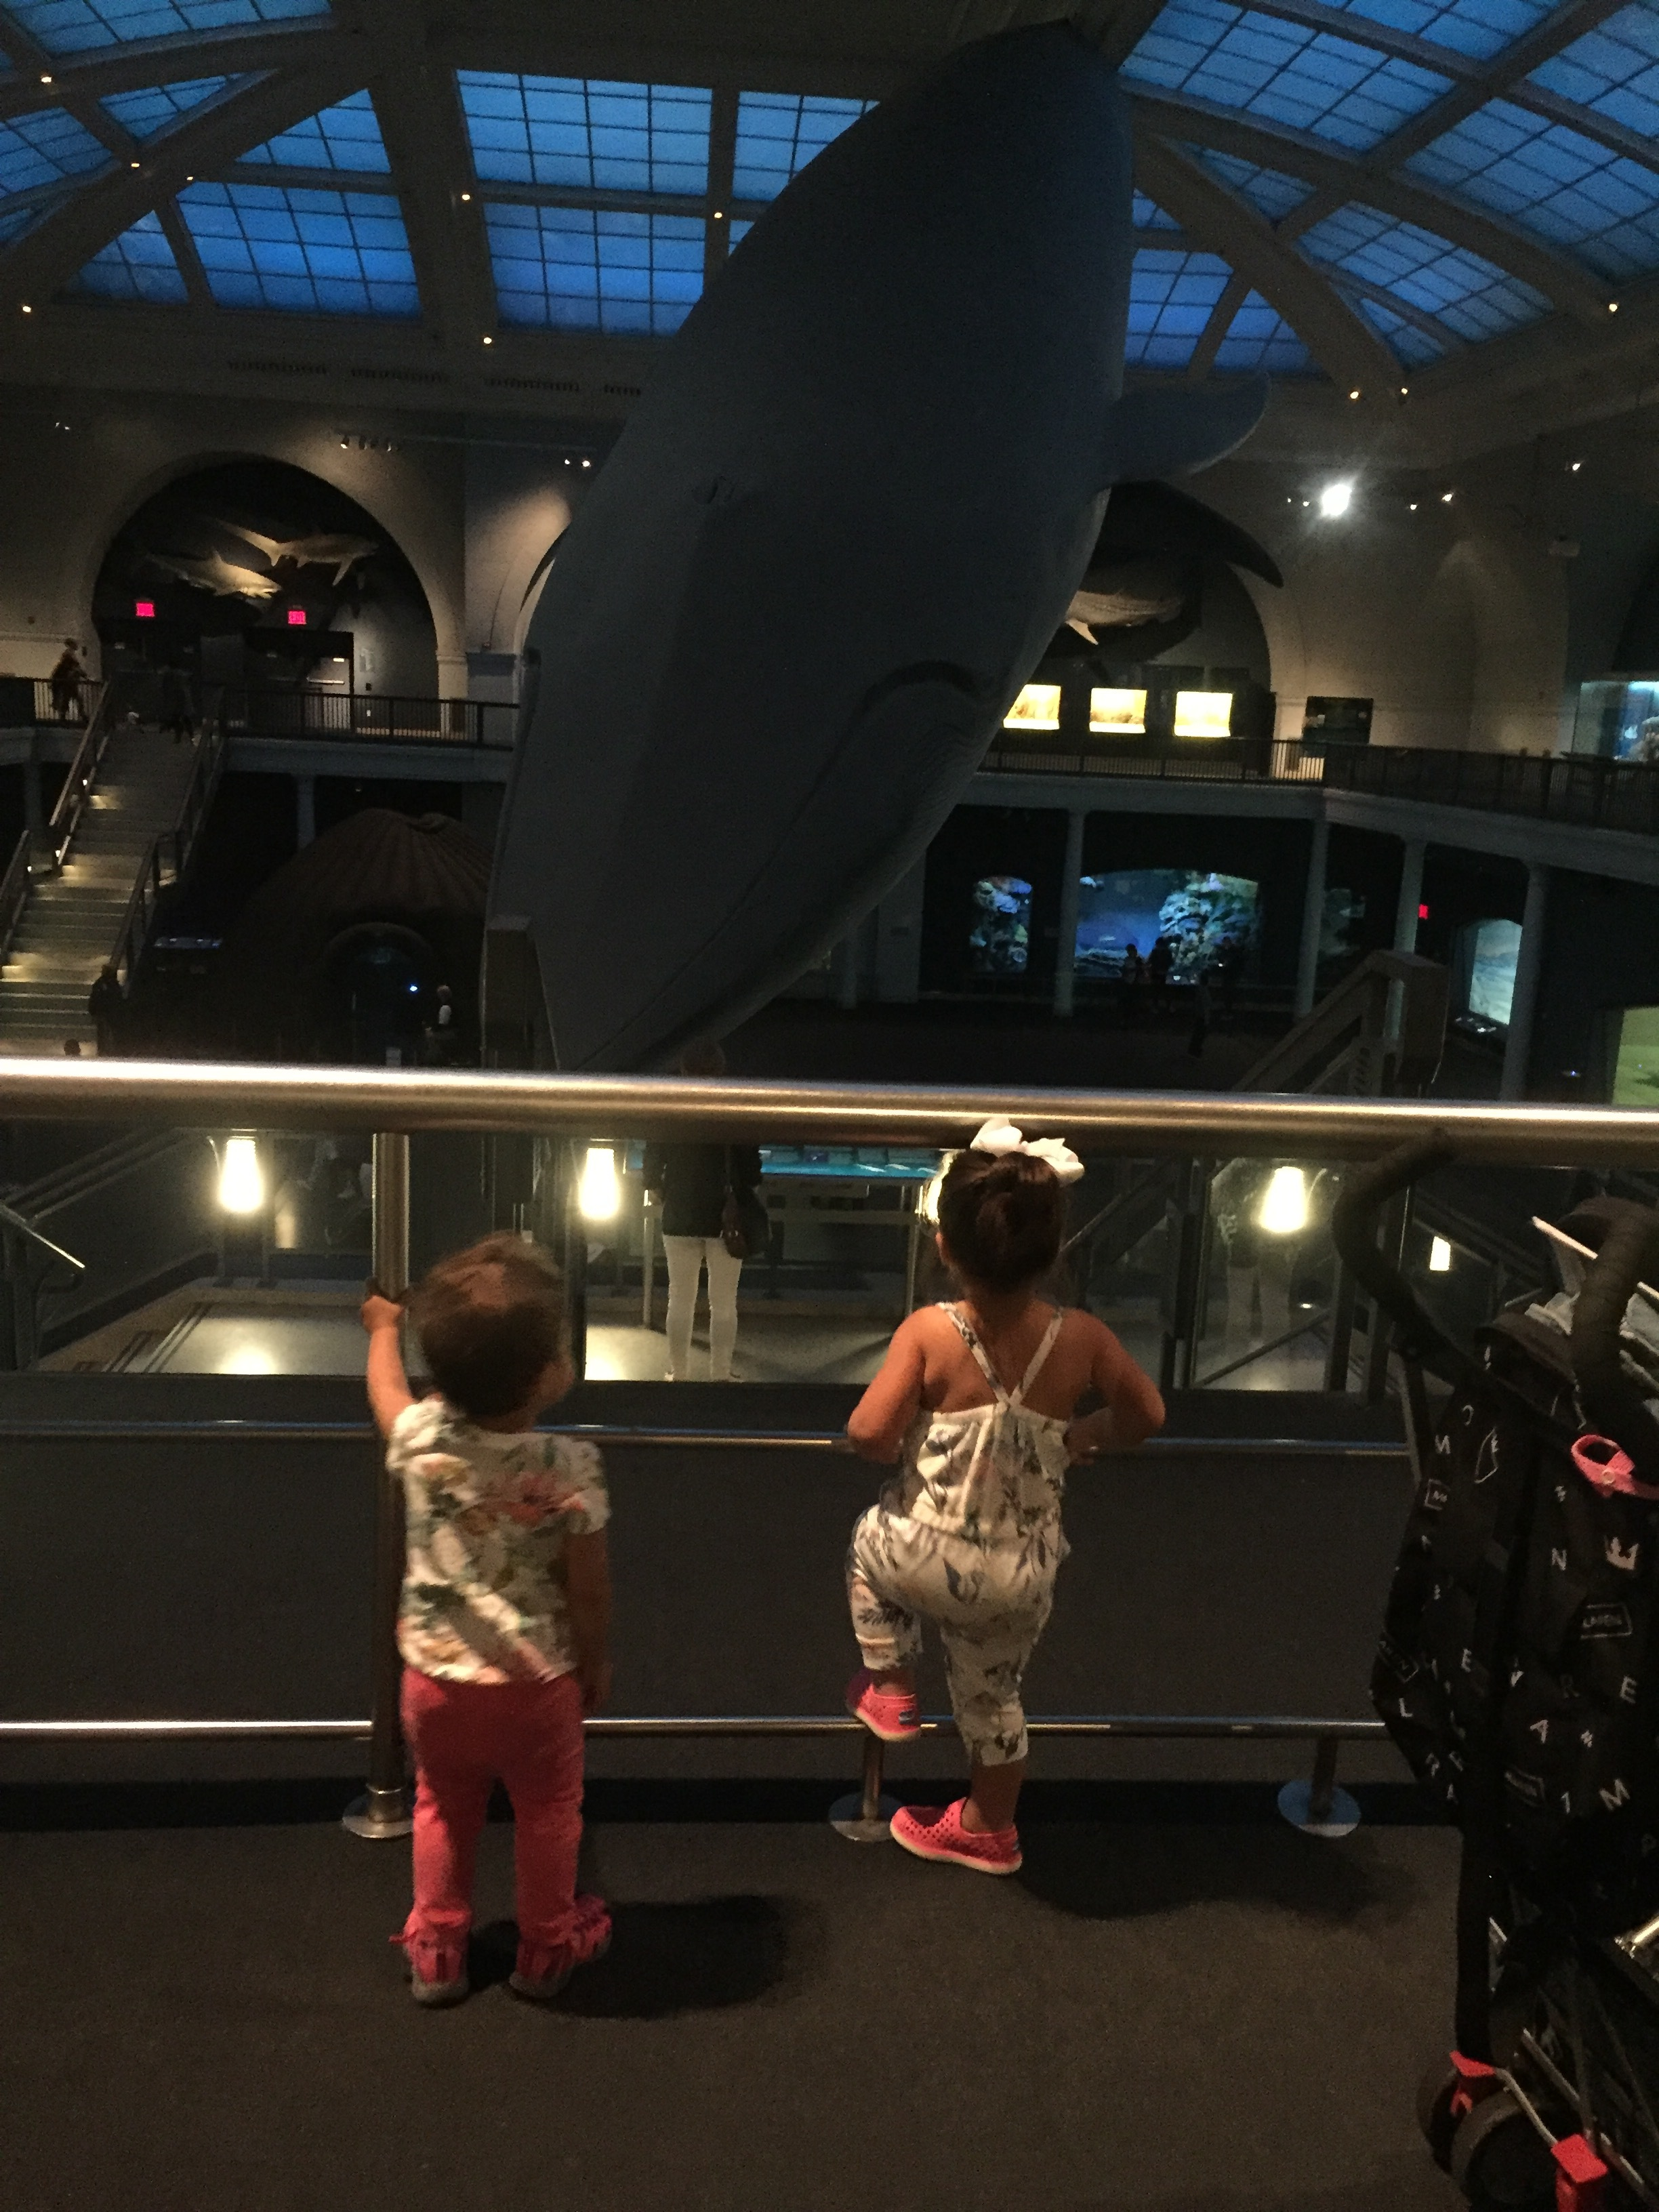 AMNH with friends!